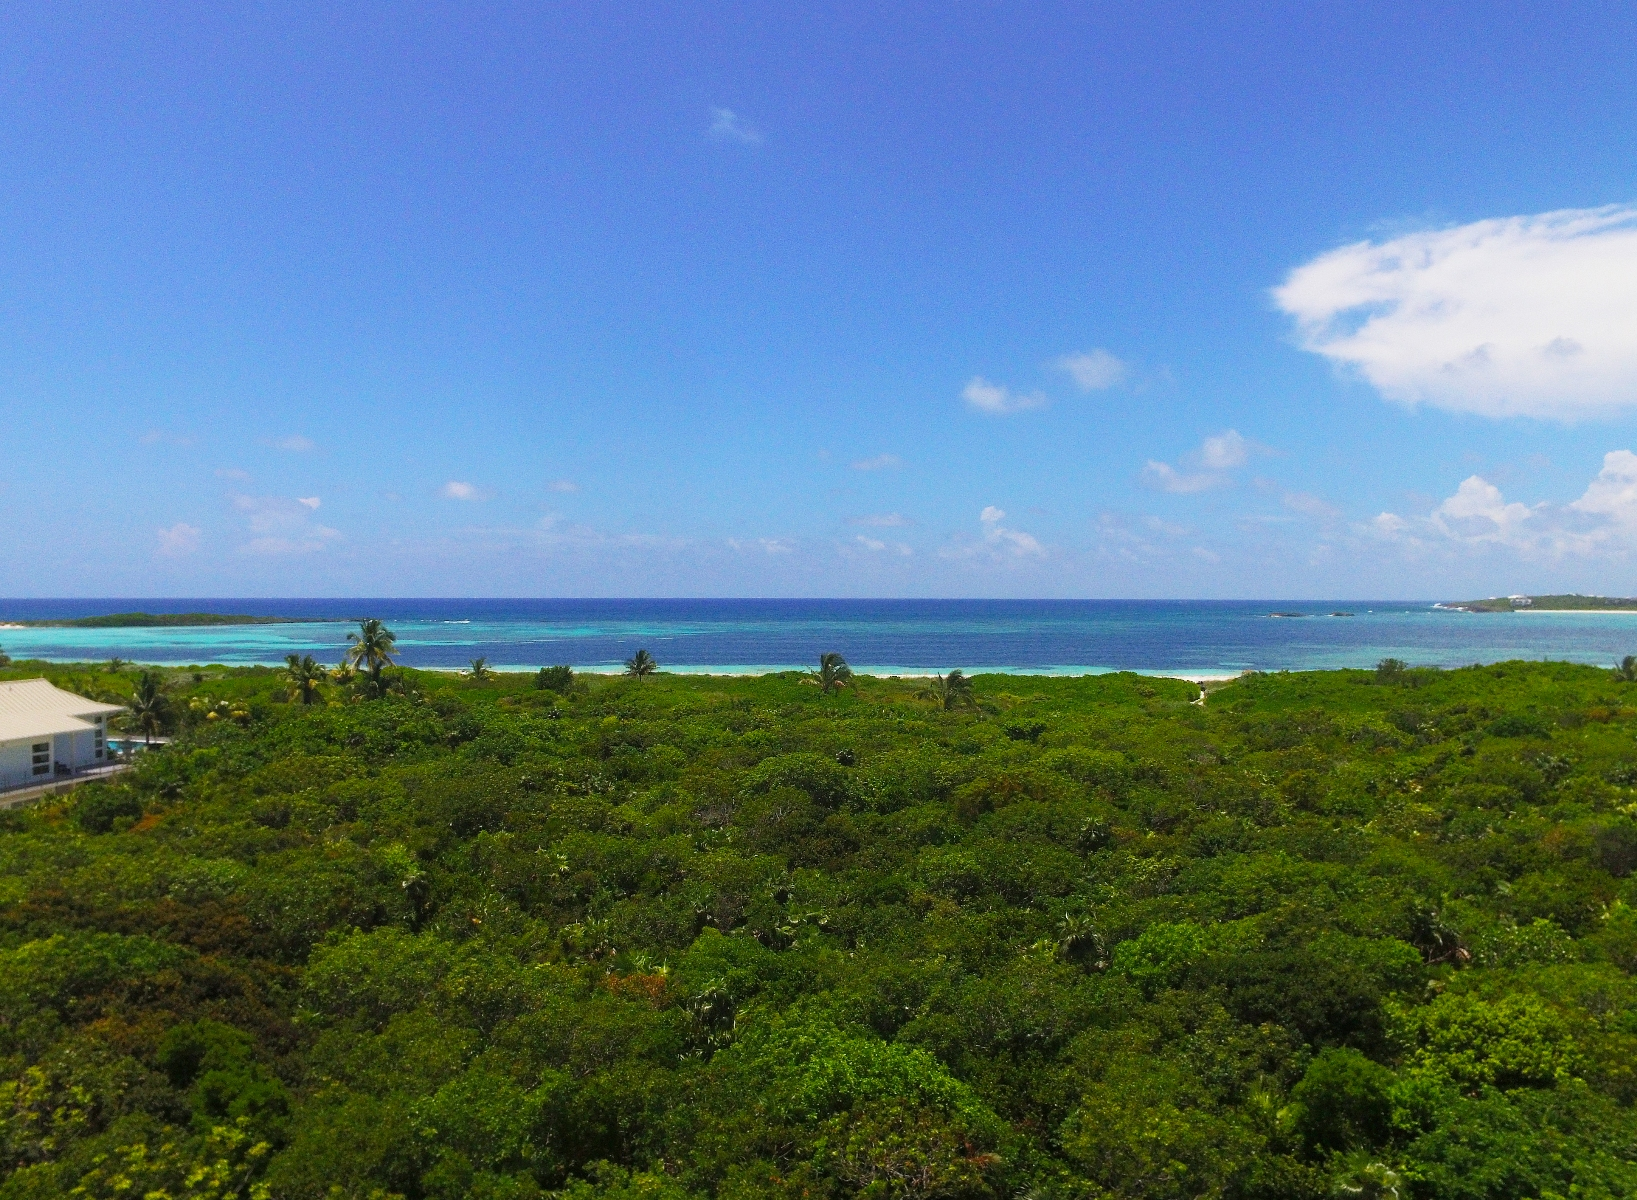 Additional photo for property listing at Stunning Private Beachfront Estate (MLS # 27795) 阿巴科, 巴哈马